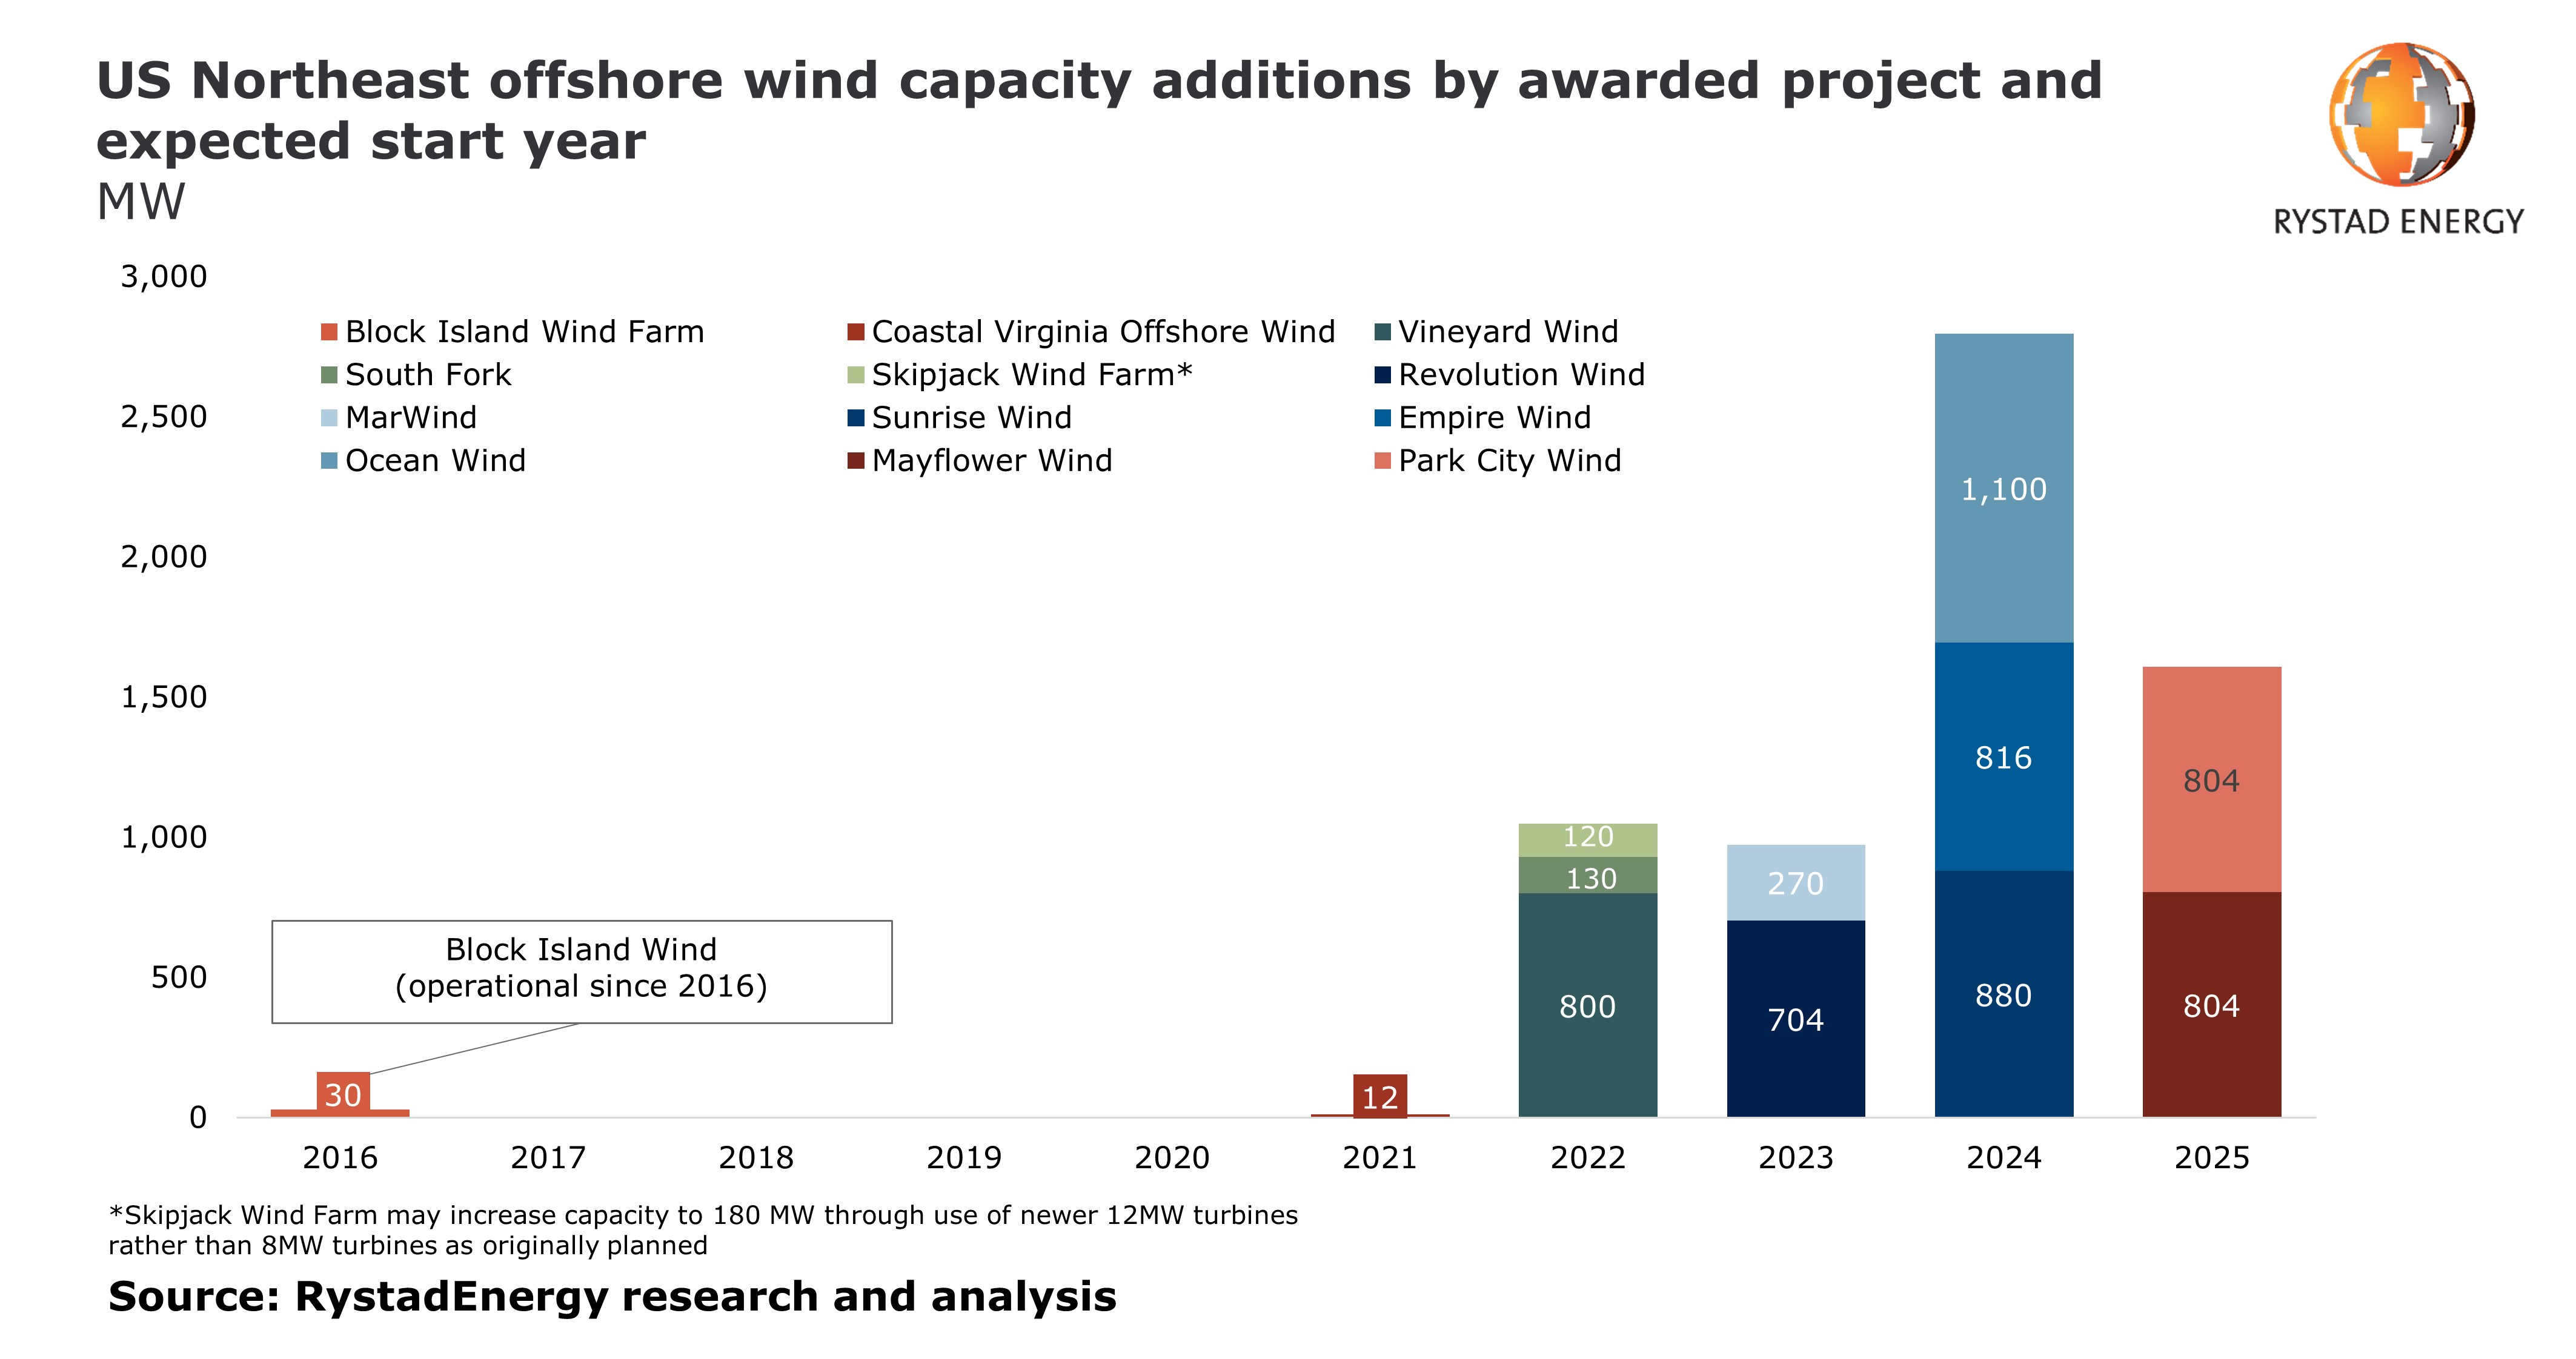 US Northeast offshore wind capacity additions by awarded project and expected start year in MW